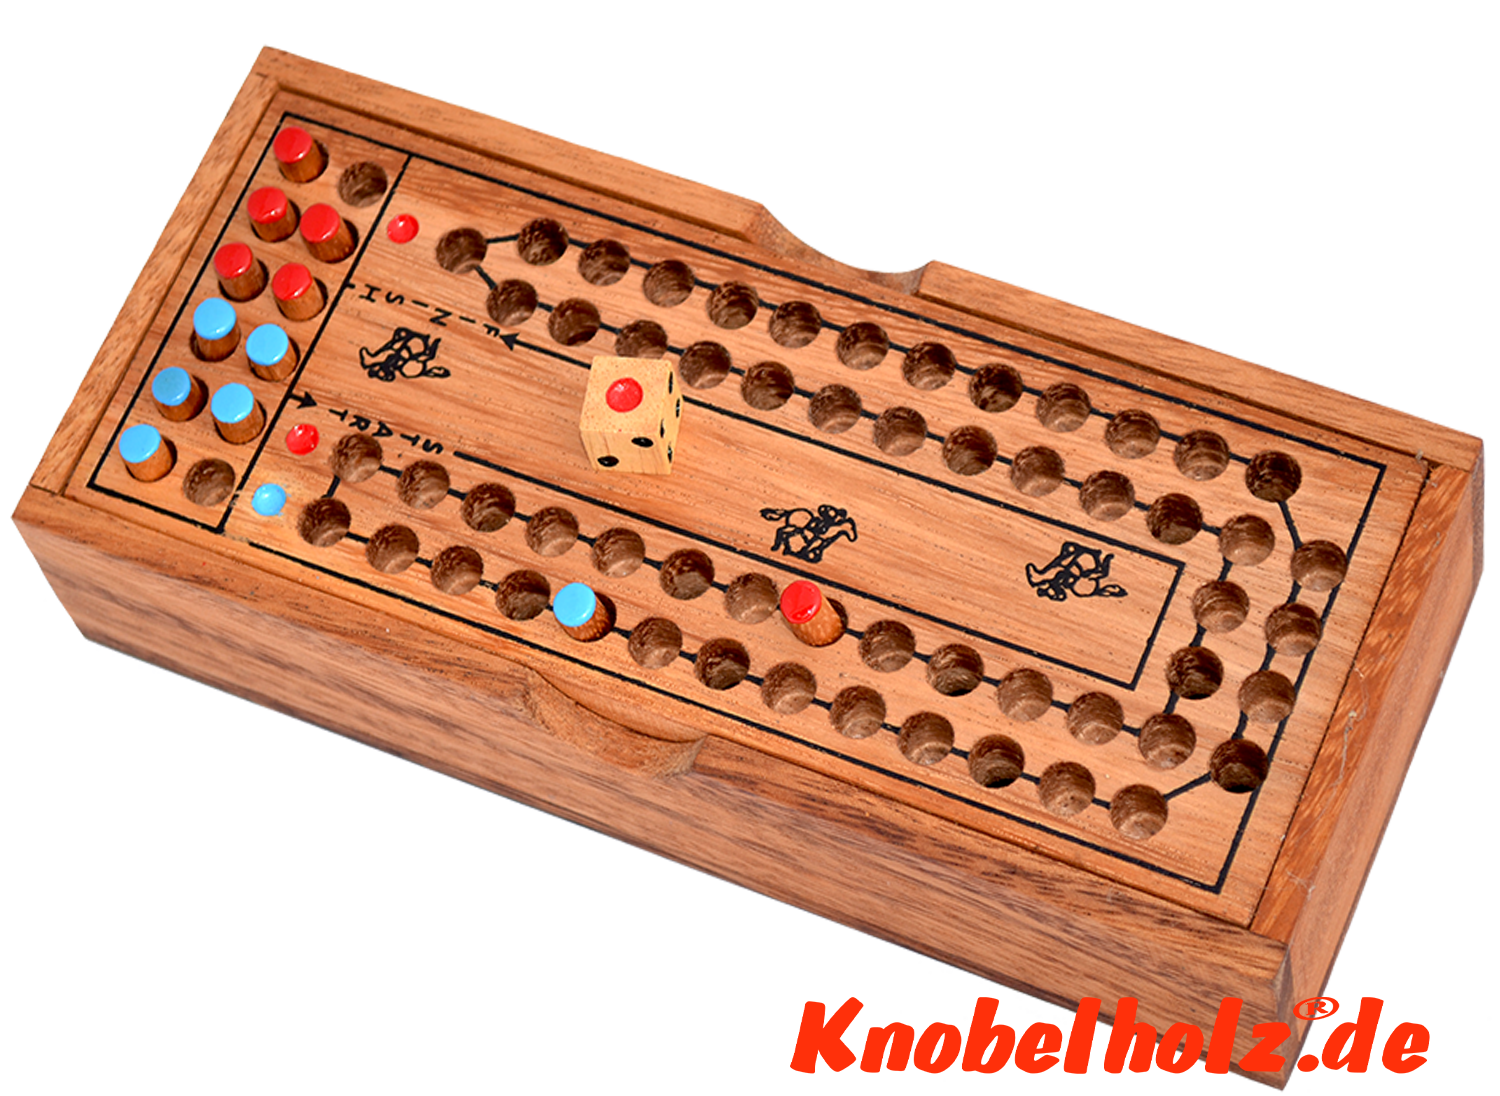 horse race dice game monkey pod wooden box for 2 player